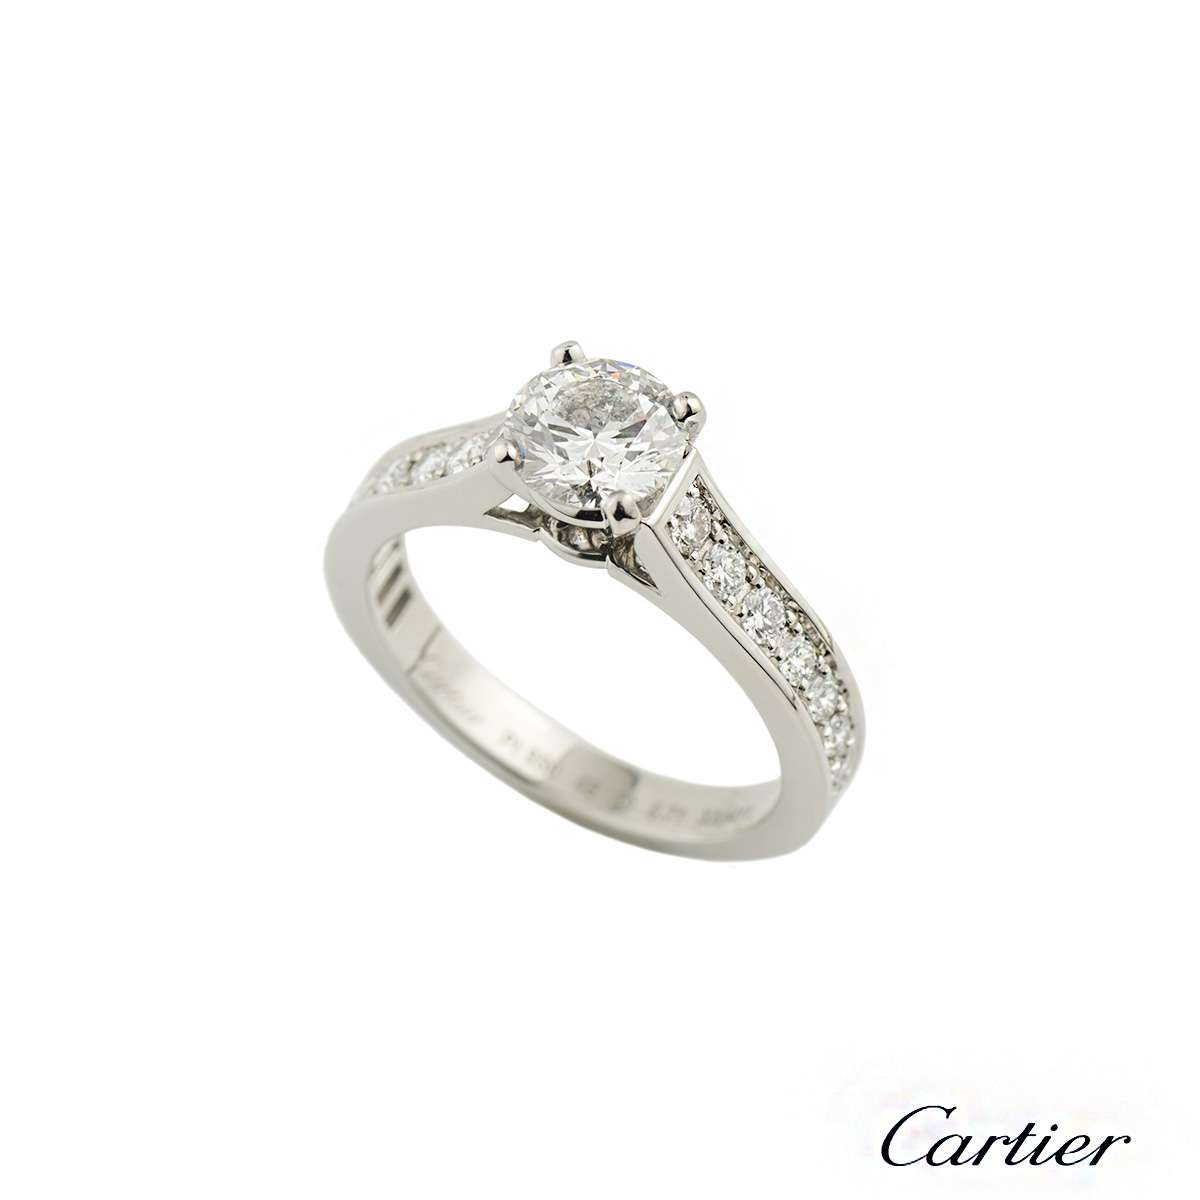 Cartier 1895 Diamond Ring in Platinum 0.71ct F/VS1 H4201347